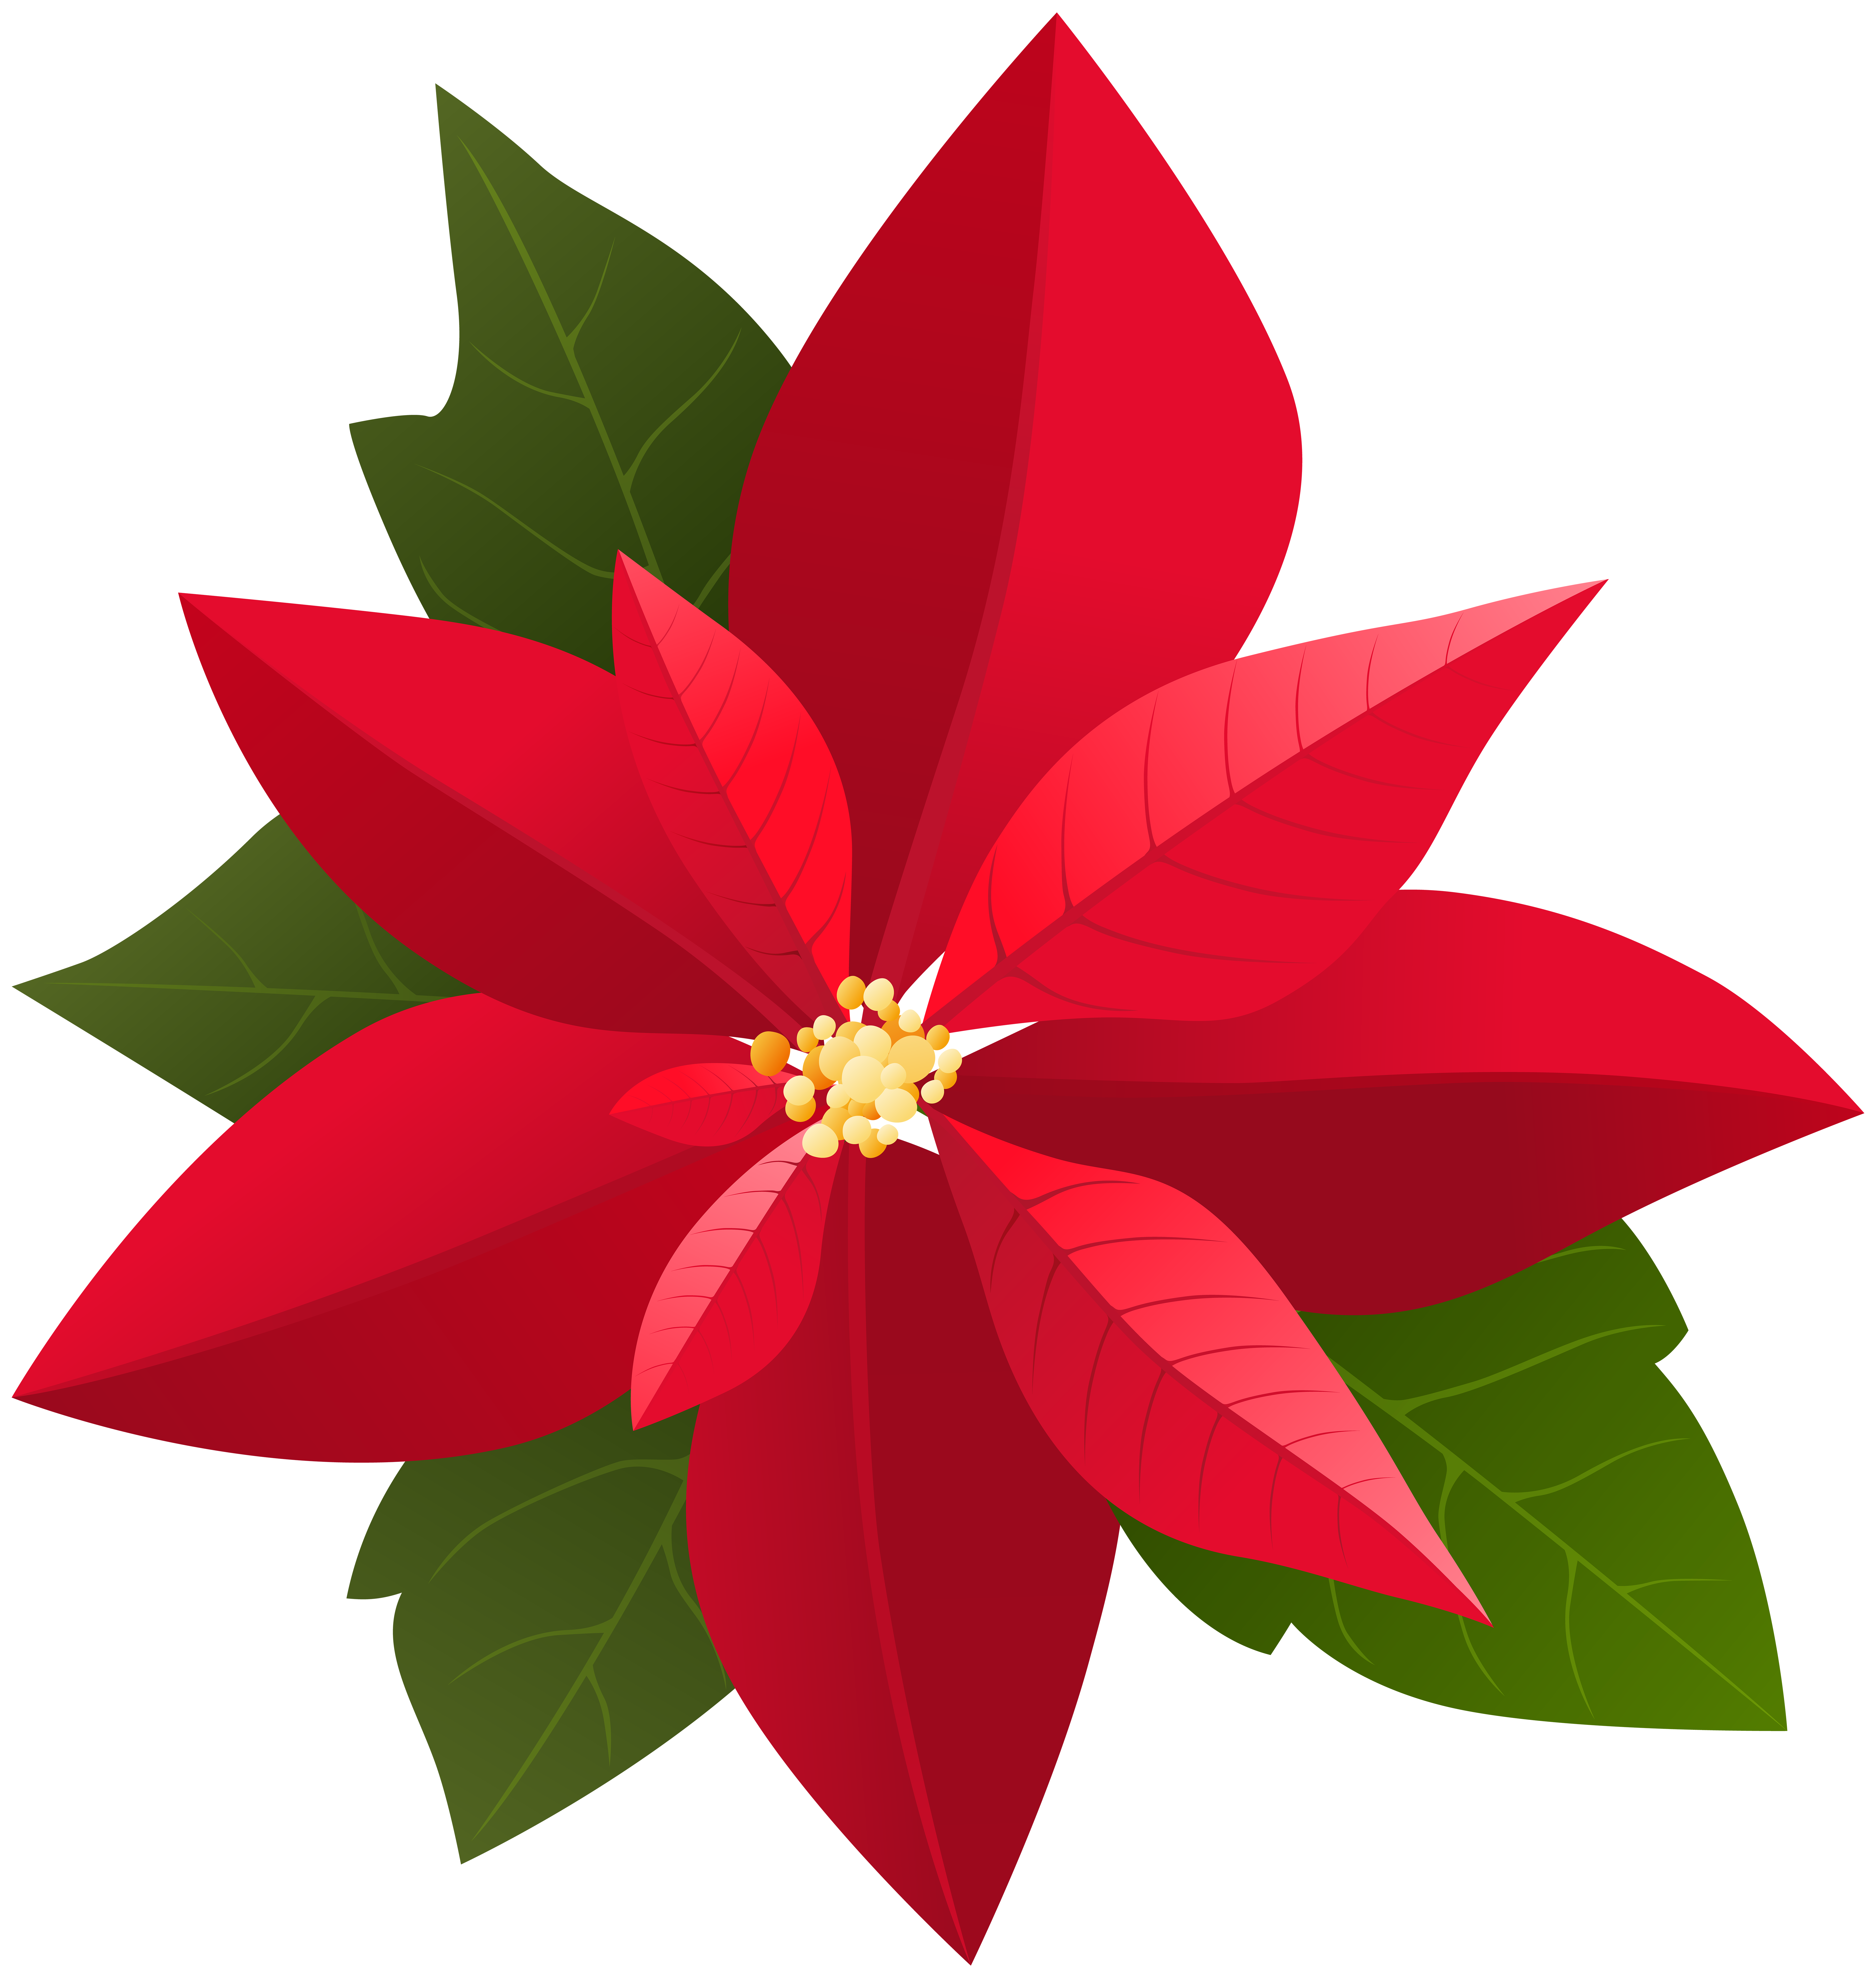 December flower clipart jpg library download Christmas Poinsettia PNG Clip Art | Gallery Yopriceville - High ... jpg library download